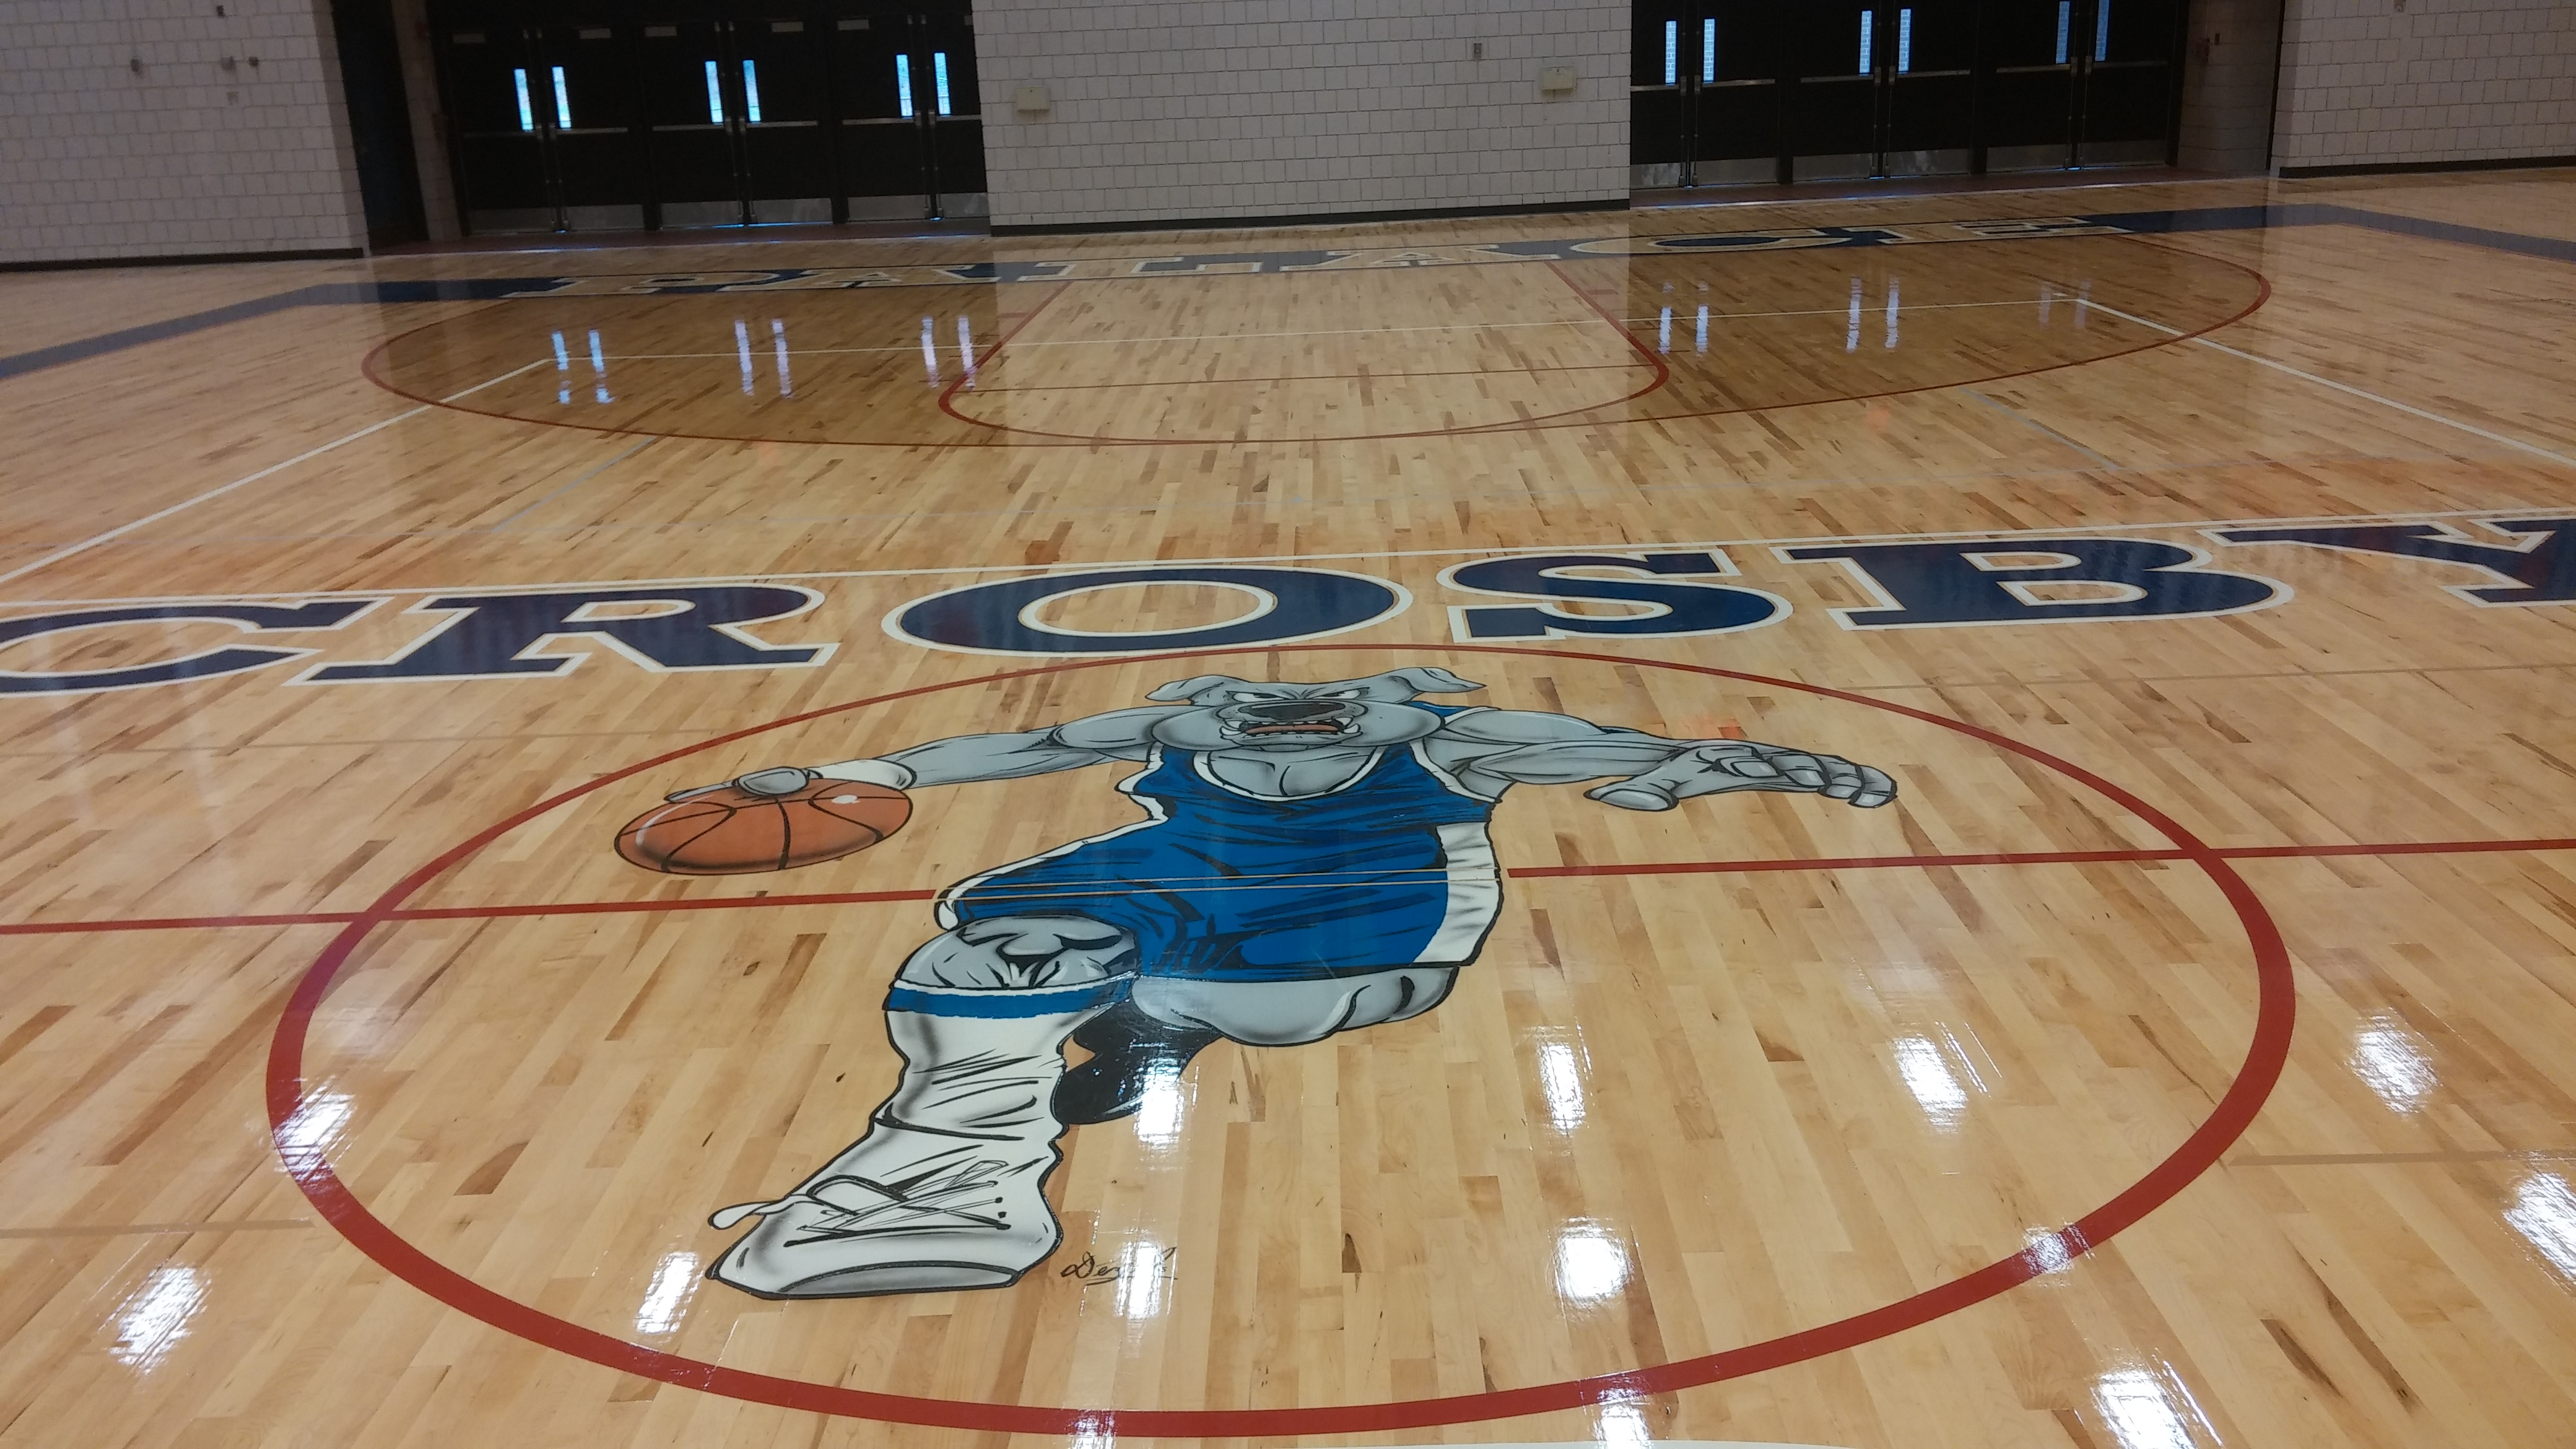 Logo - Bulldog Basketball - Crosby High School - Waterbury CT.JPG